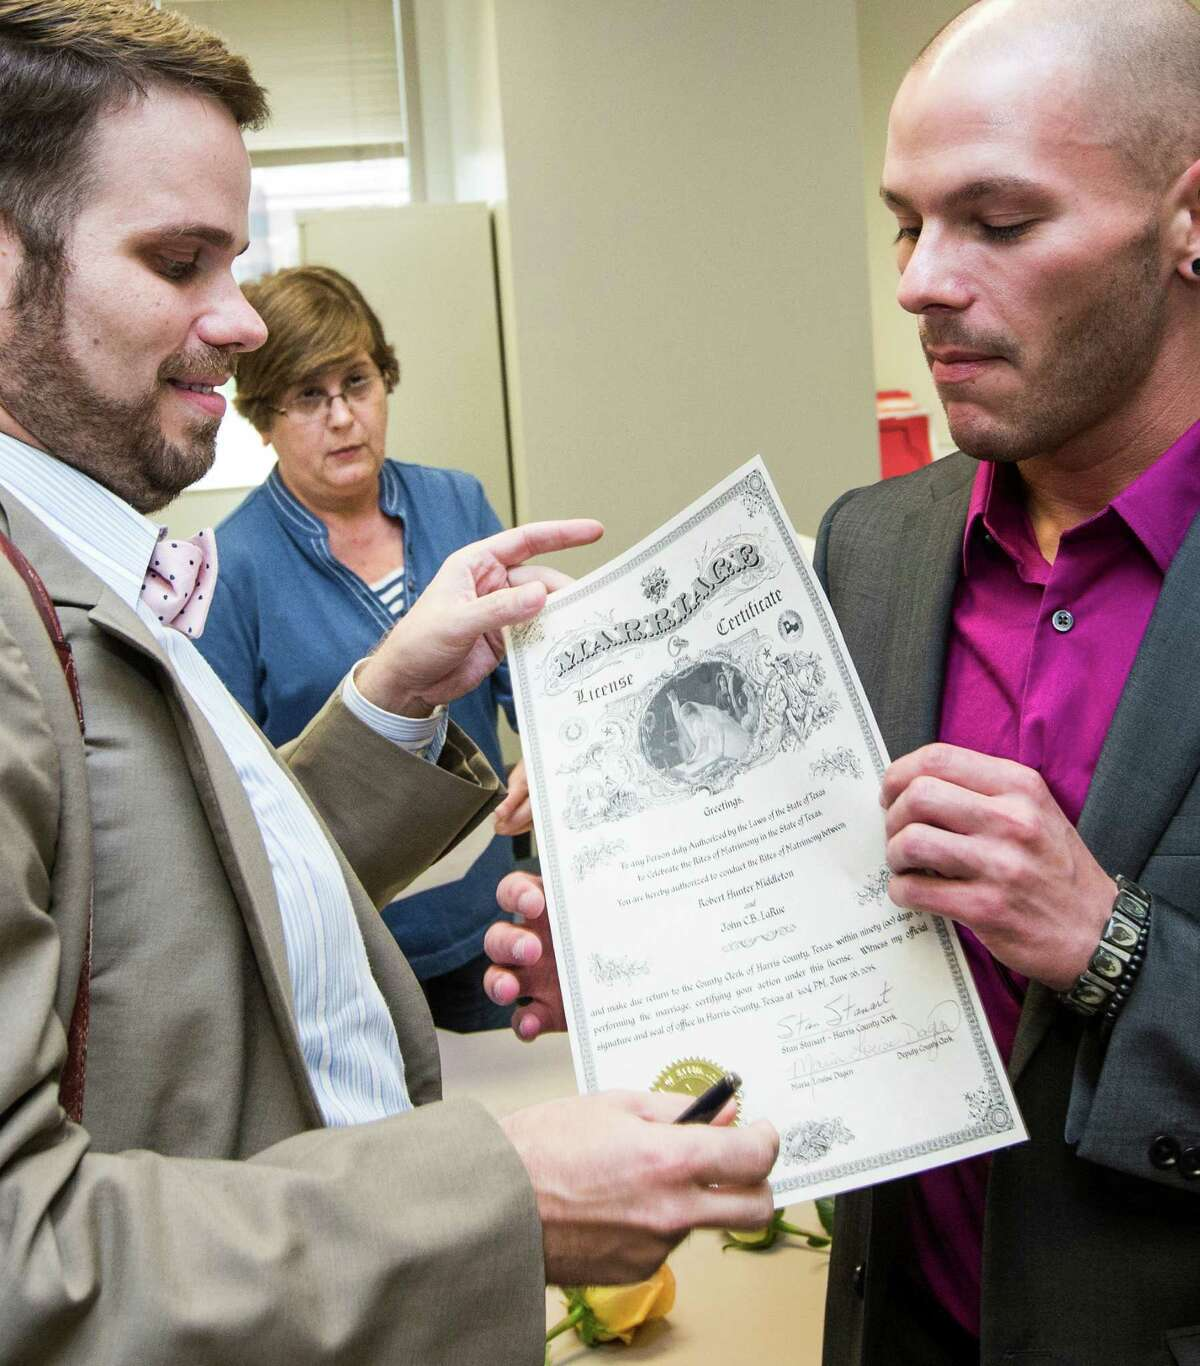 Before issuing a marriage license to John LaRue, left, and Hunter Middleton, Maria Dagen told them her daughter and daughter-in-law were proud of the historic role she played in Harris County.